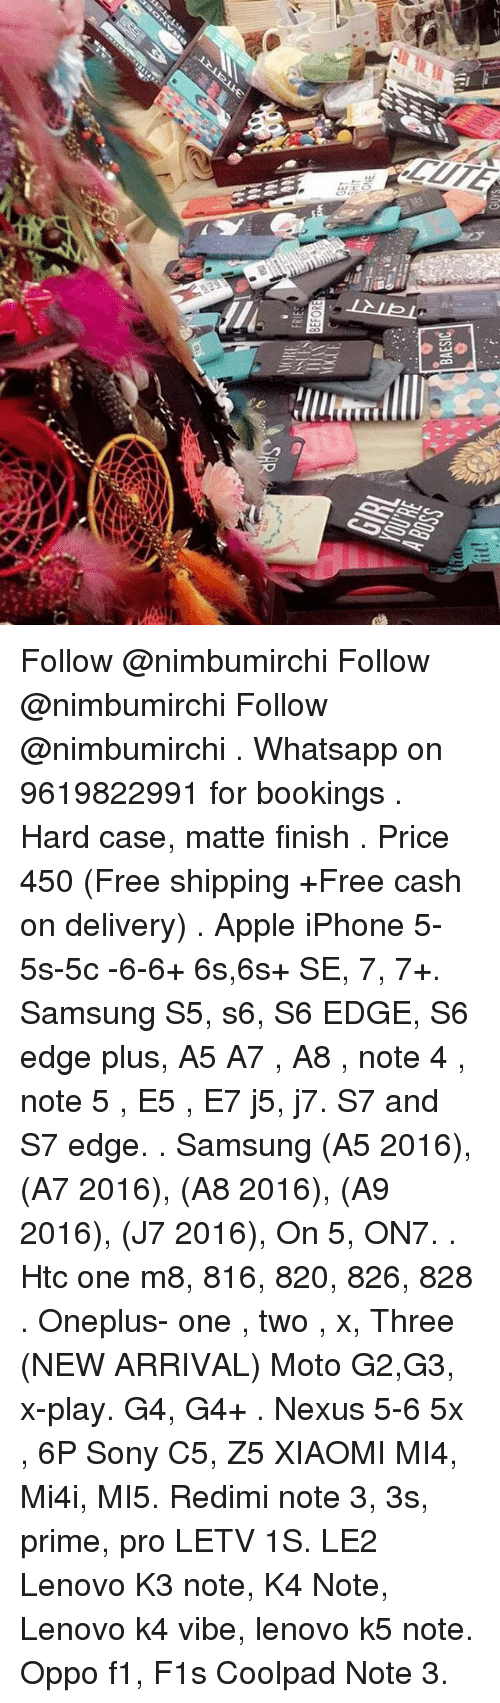 Apple, Sony, and Whatsapp: BAESIC  -lliterrnl  LLLL Follow @nimbumirchi Follow @nimbumirchi Follow @nimbumirchi . Whatsapp on 9619822991 for bookings . Hard case, matte finish . Price 450 (Free shipping +Free cash on delivery) . Apple iPhone 5-5s-5c -6-6+ 6s,6s+ SE, 7, 7+. Samsung S5, s6, S6 EDGE, S6 edge plus, A5 A7 , A8 , note 4 , note 5 , E5 , E7 j5, j7. S7 and S7 edge. . Samsung (A5 2016), (A7 2016), (A8 2016), (A9 2016), (J7 2016), On 5, ON7. . Htc one m8, 816, 820, 826, 828 . Oneplus- one , two , x, Three (NEW ARRIVAL) Moto G2,G3, x-play. G4, G4+ . Nexus 5-6 5x , 6P Sony C5, Z5 XIAOMI MI4, Mi4i, MI5. Redimi note 3, 3s, prime, pro LETV 1S. LE2 Lenovo K3 note, K4 Note, Lenovo k4 vibe, lenovo k5 note. Oppo f1, F1s Coolpad Note 3.